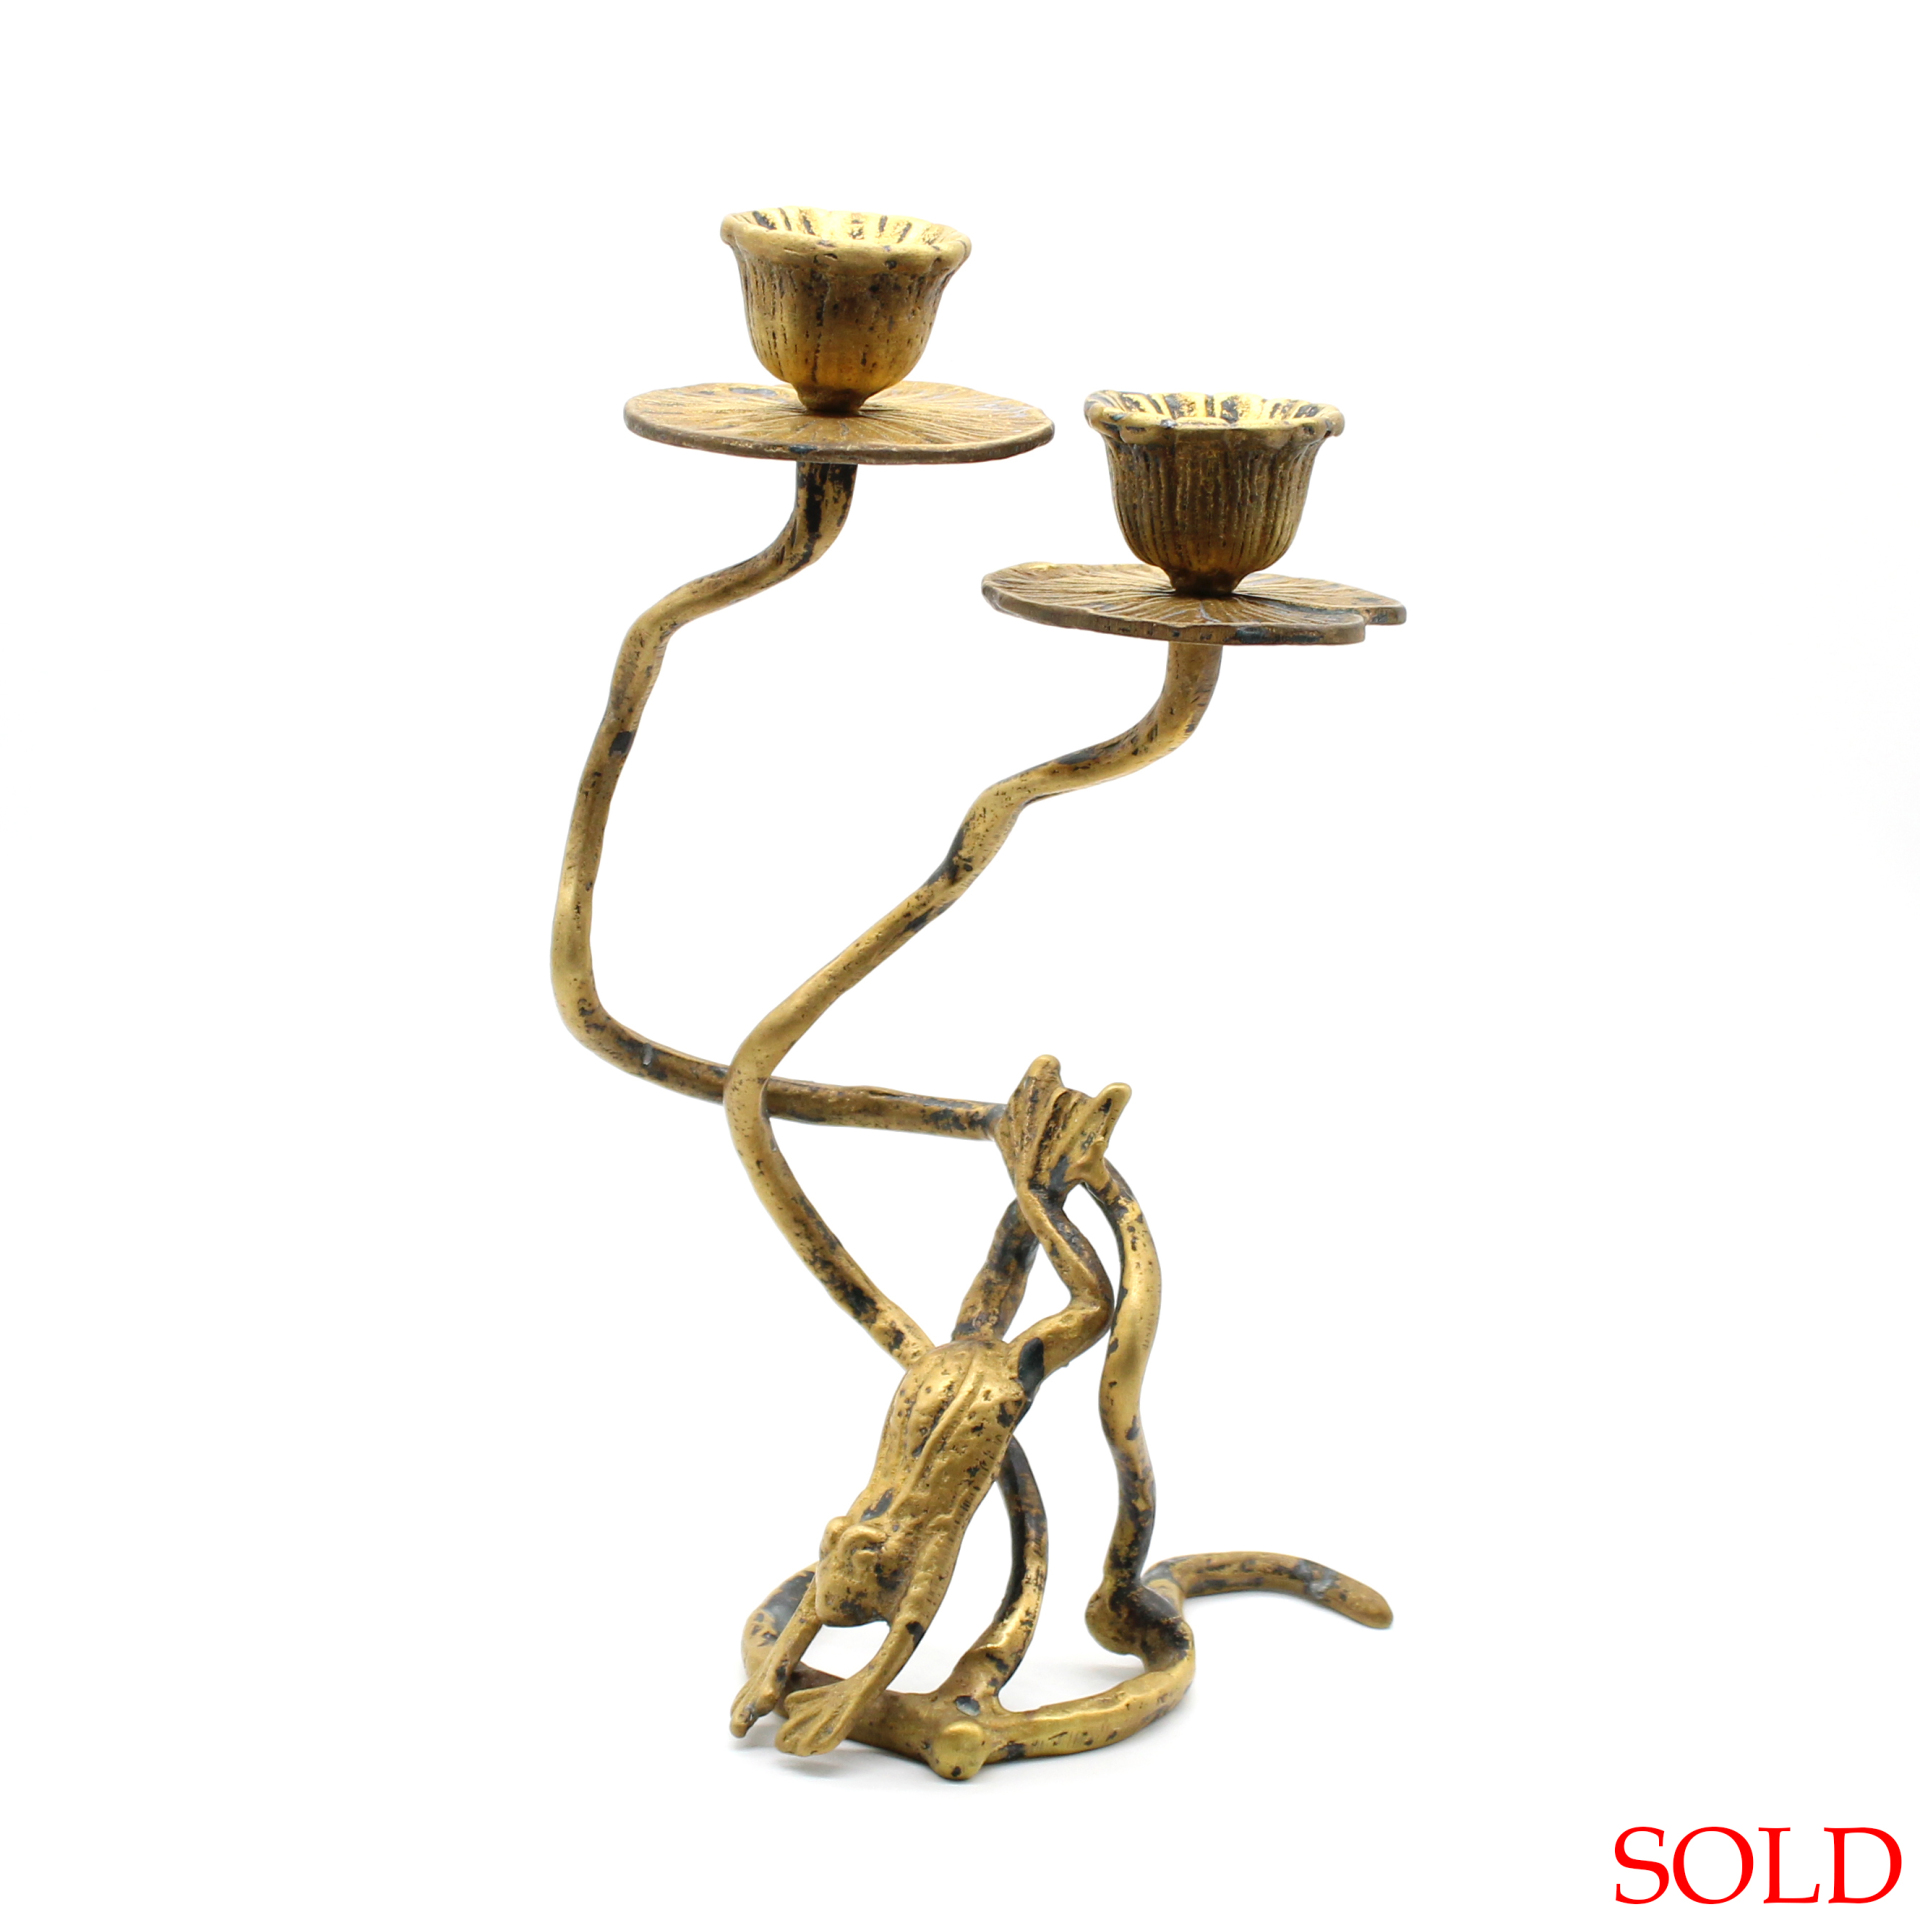 SOLD Vintage Brass Leaping Frog & Lily Pad Candle Holder